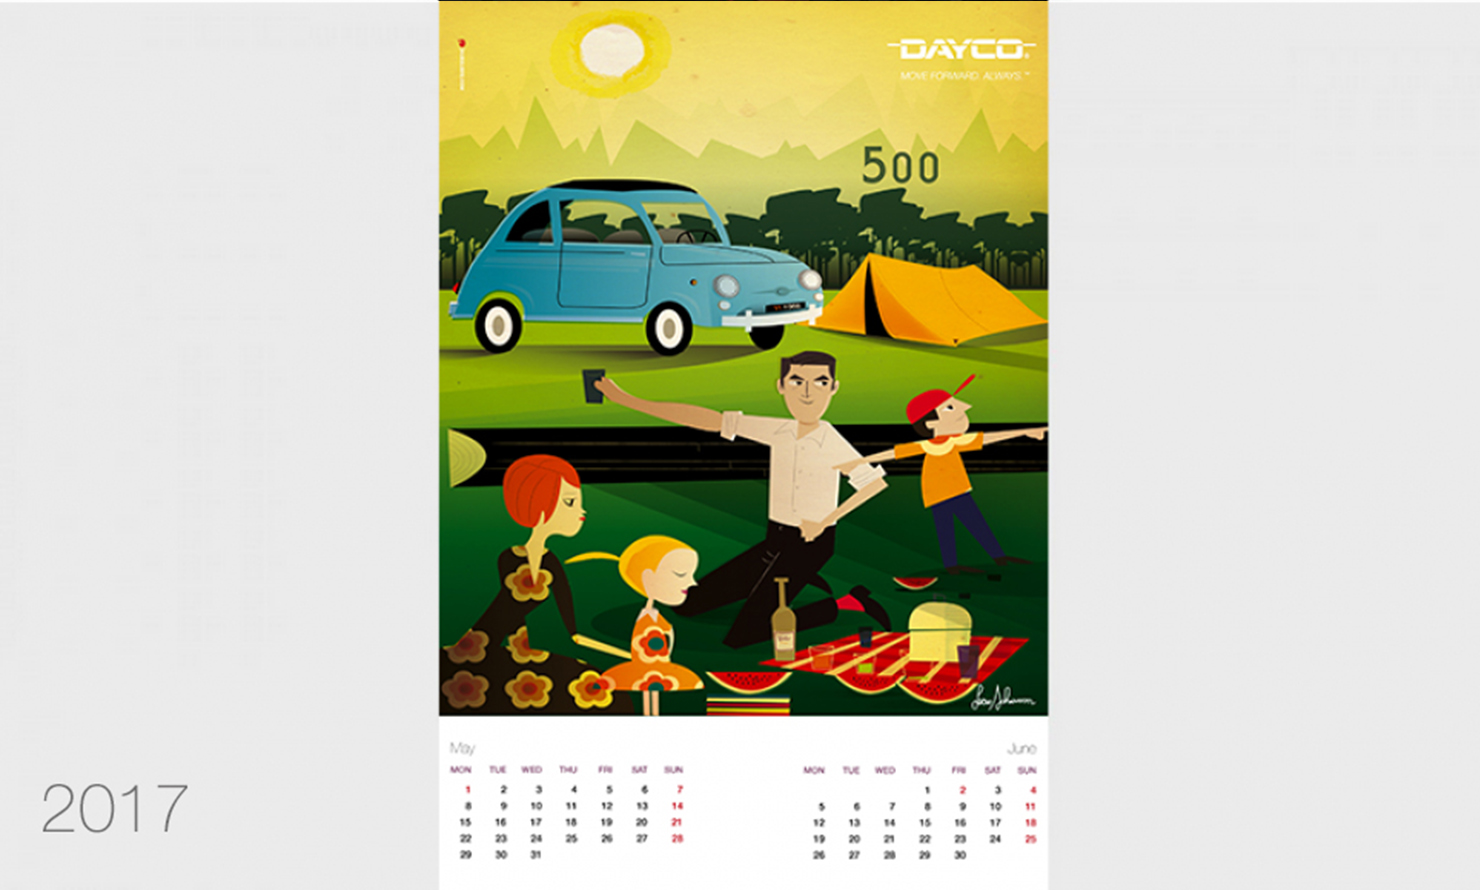 https://kubelibre.com/uploads/Slider-work-tutti-clienti/dayco-calendario-2017-3.jpg